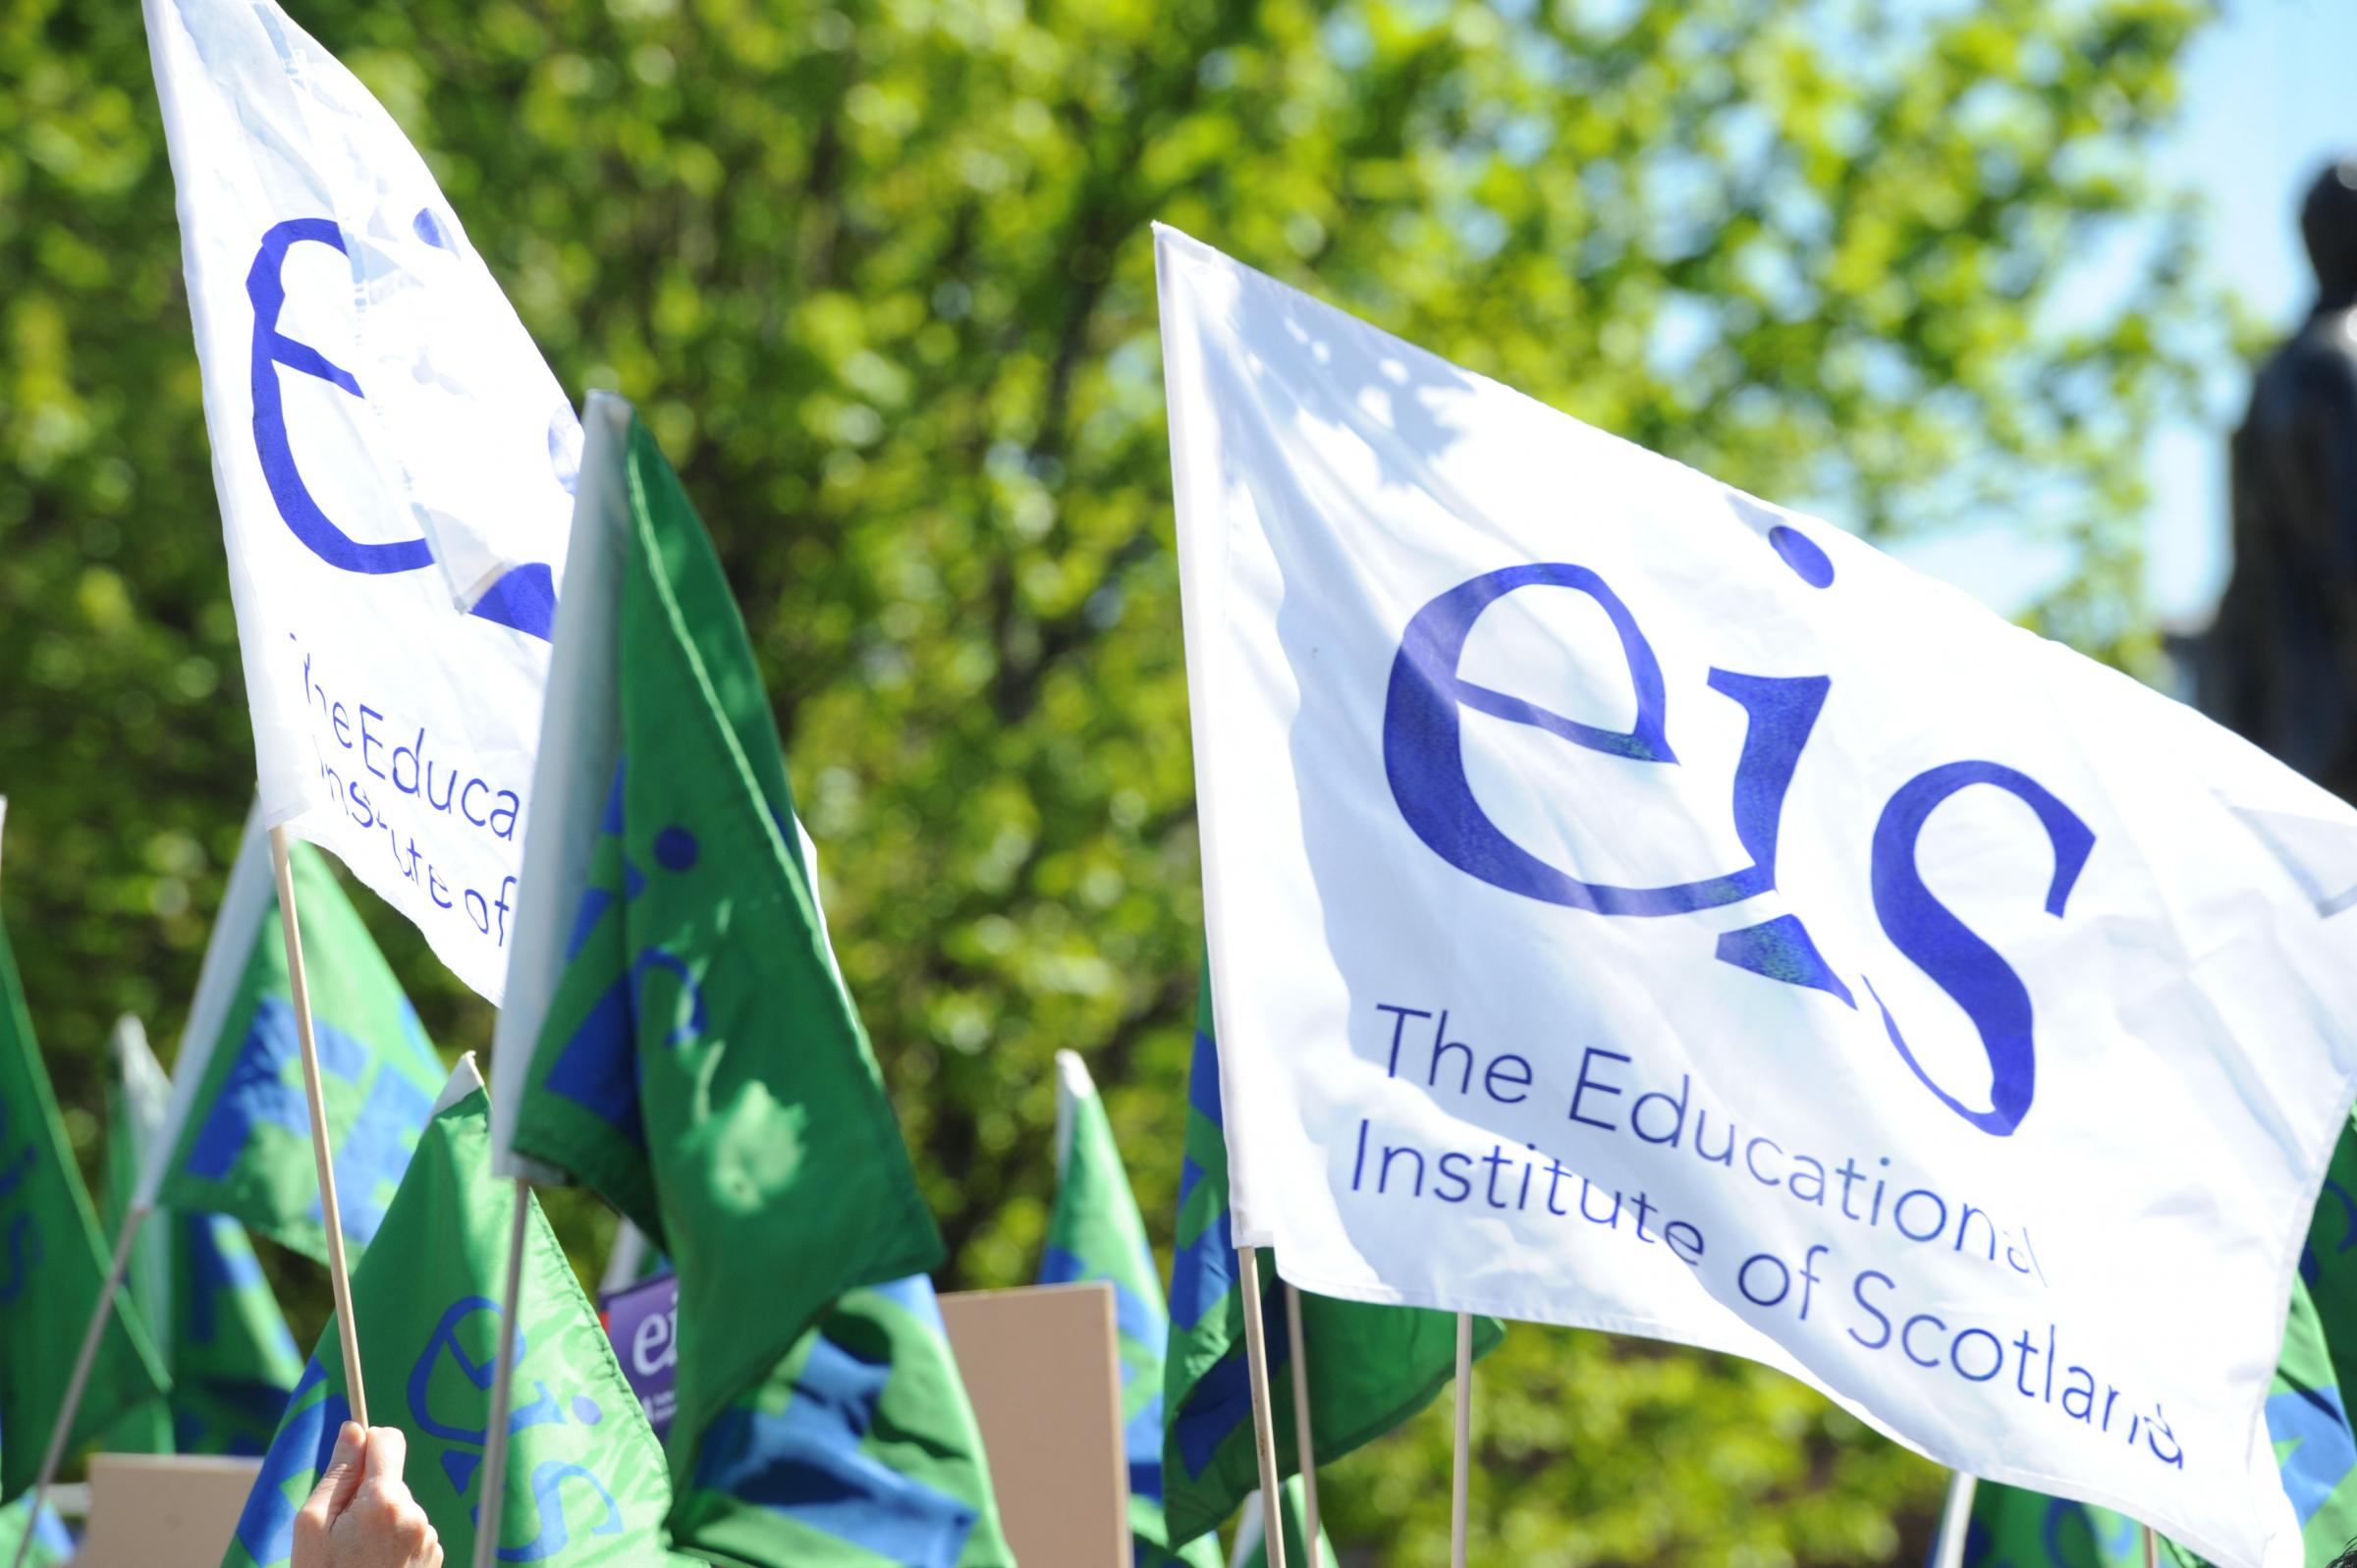 Teaching unions want a 10 per cent pay rise for all staff